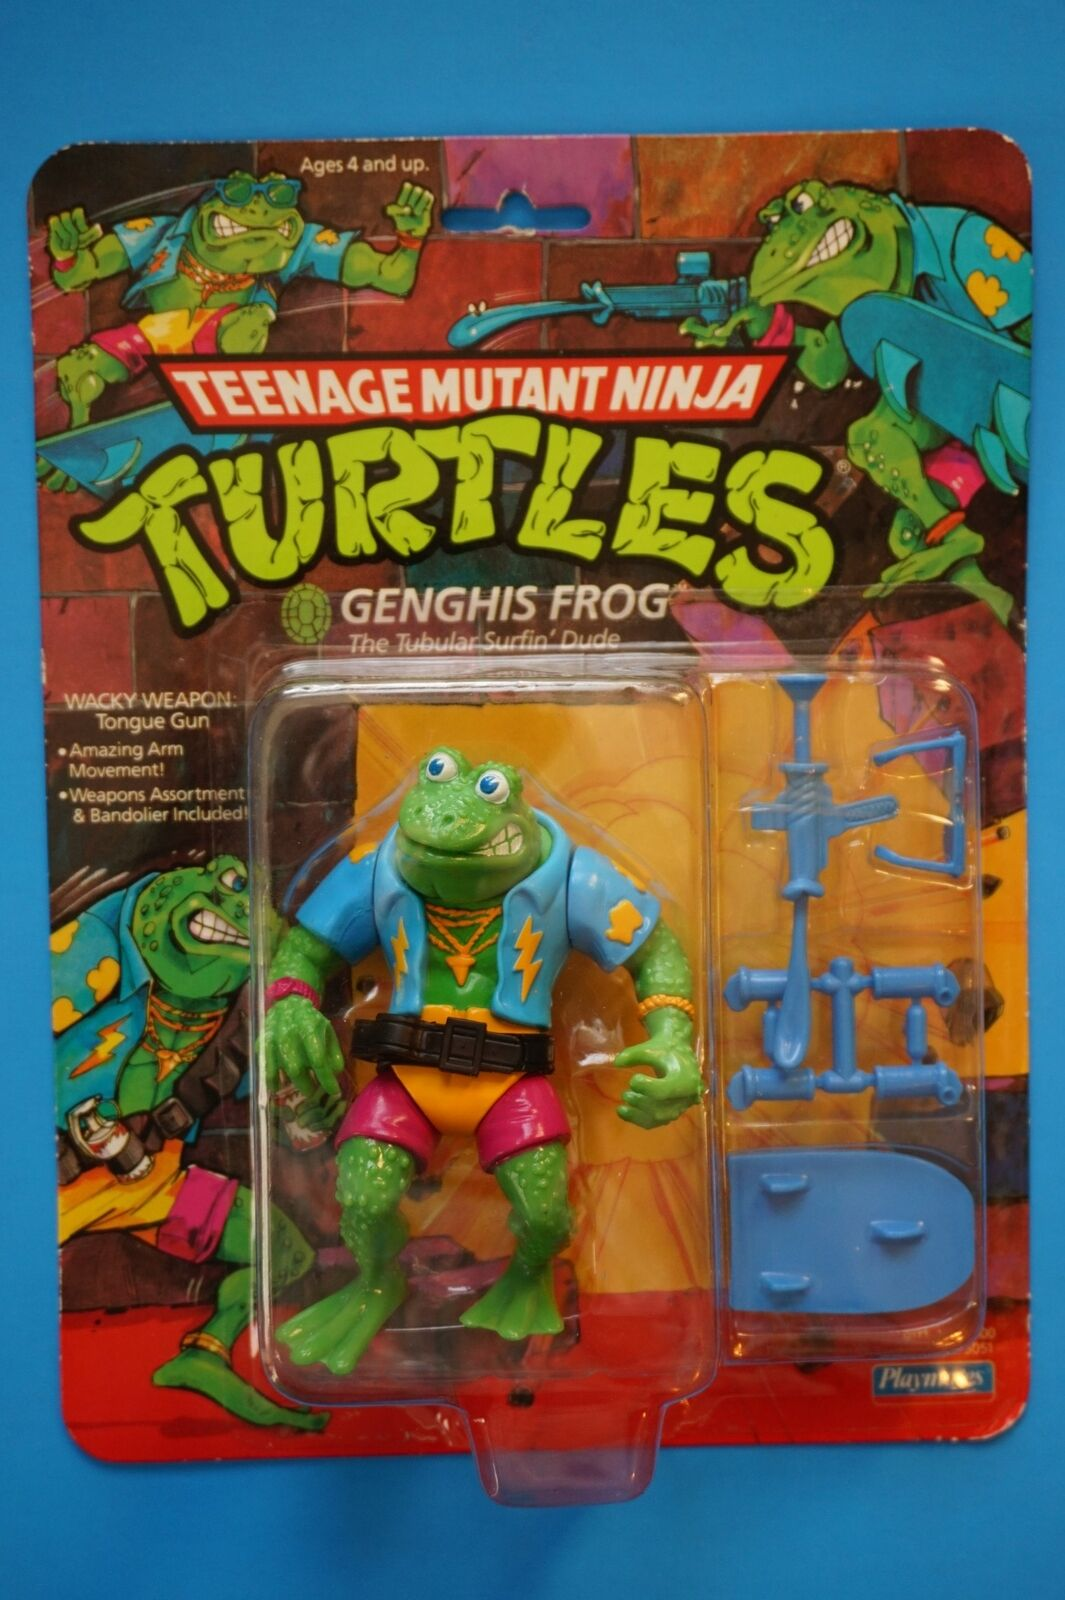 1989 Teenage Mutant Ninja Turtles Figura  Gengis Frog  Como Nuevo Sellado Menta en paquete Teenage Mutant Ninja Turtles